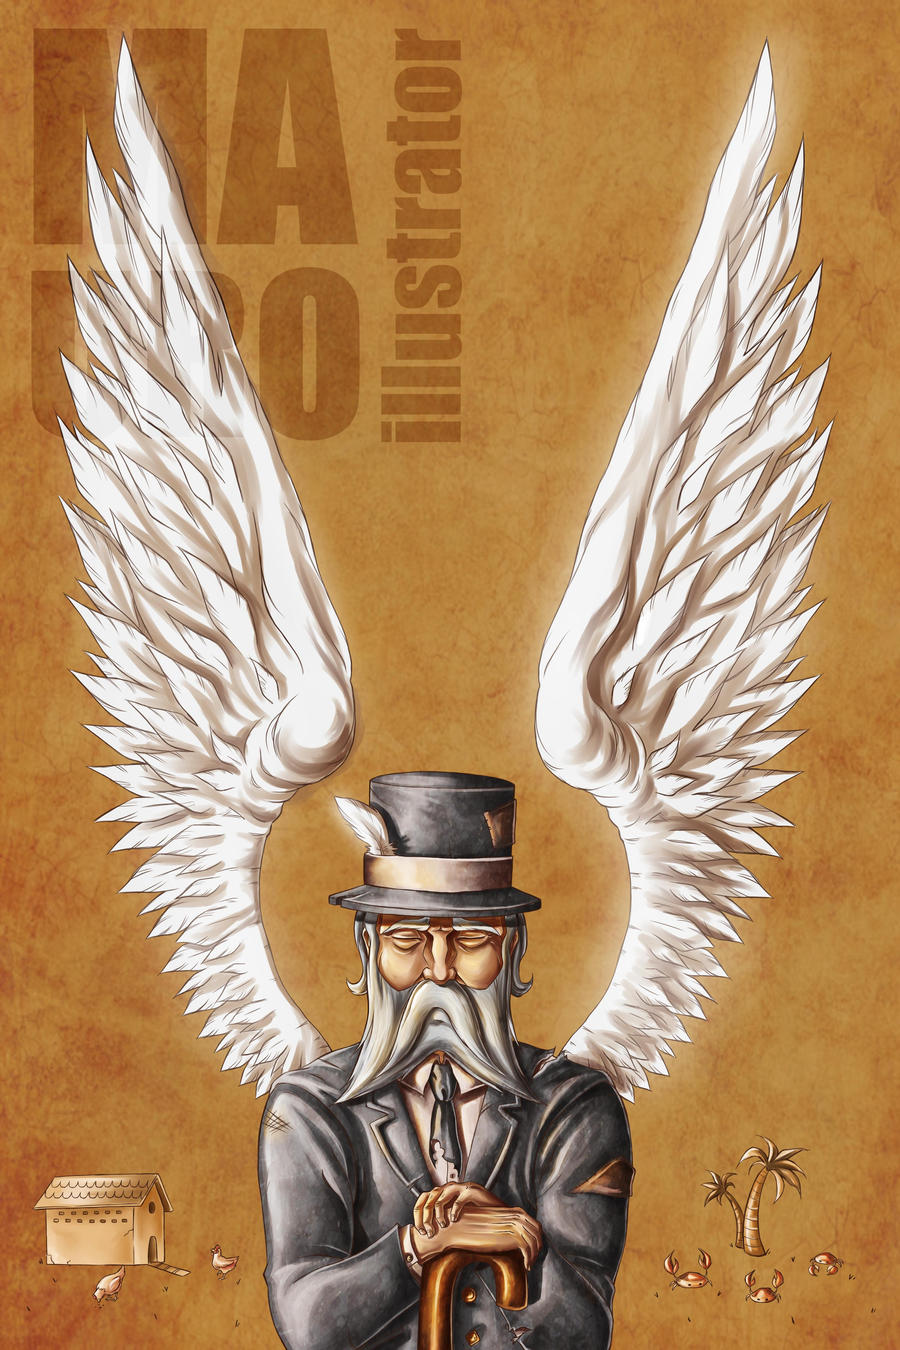 Very Old Man With Enormous Wings Symbolism | cmsfc.com